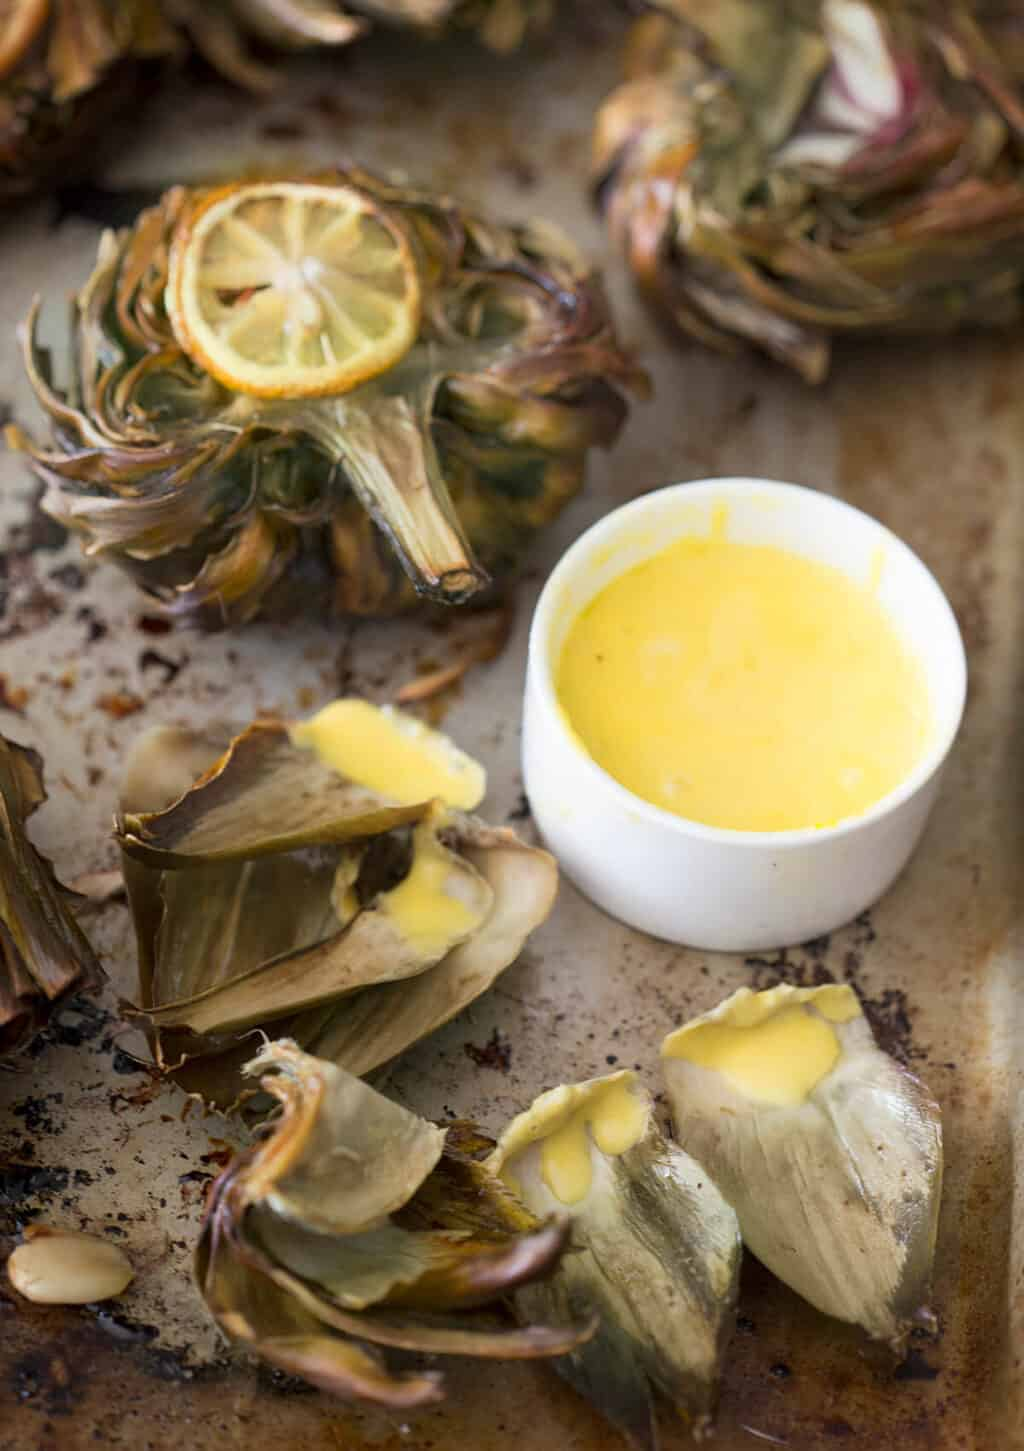 A photo of roasted artichokes with dipping sauce on the side.